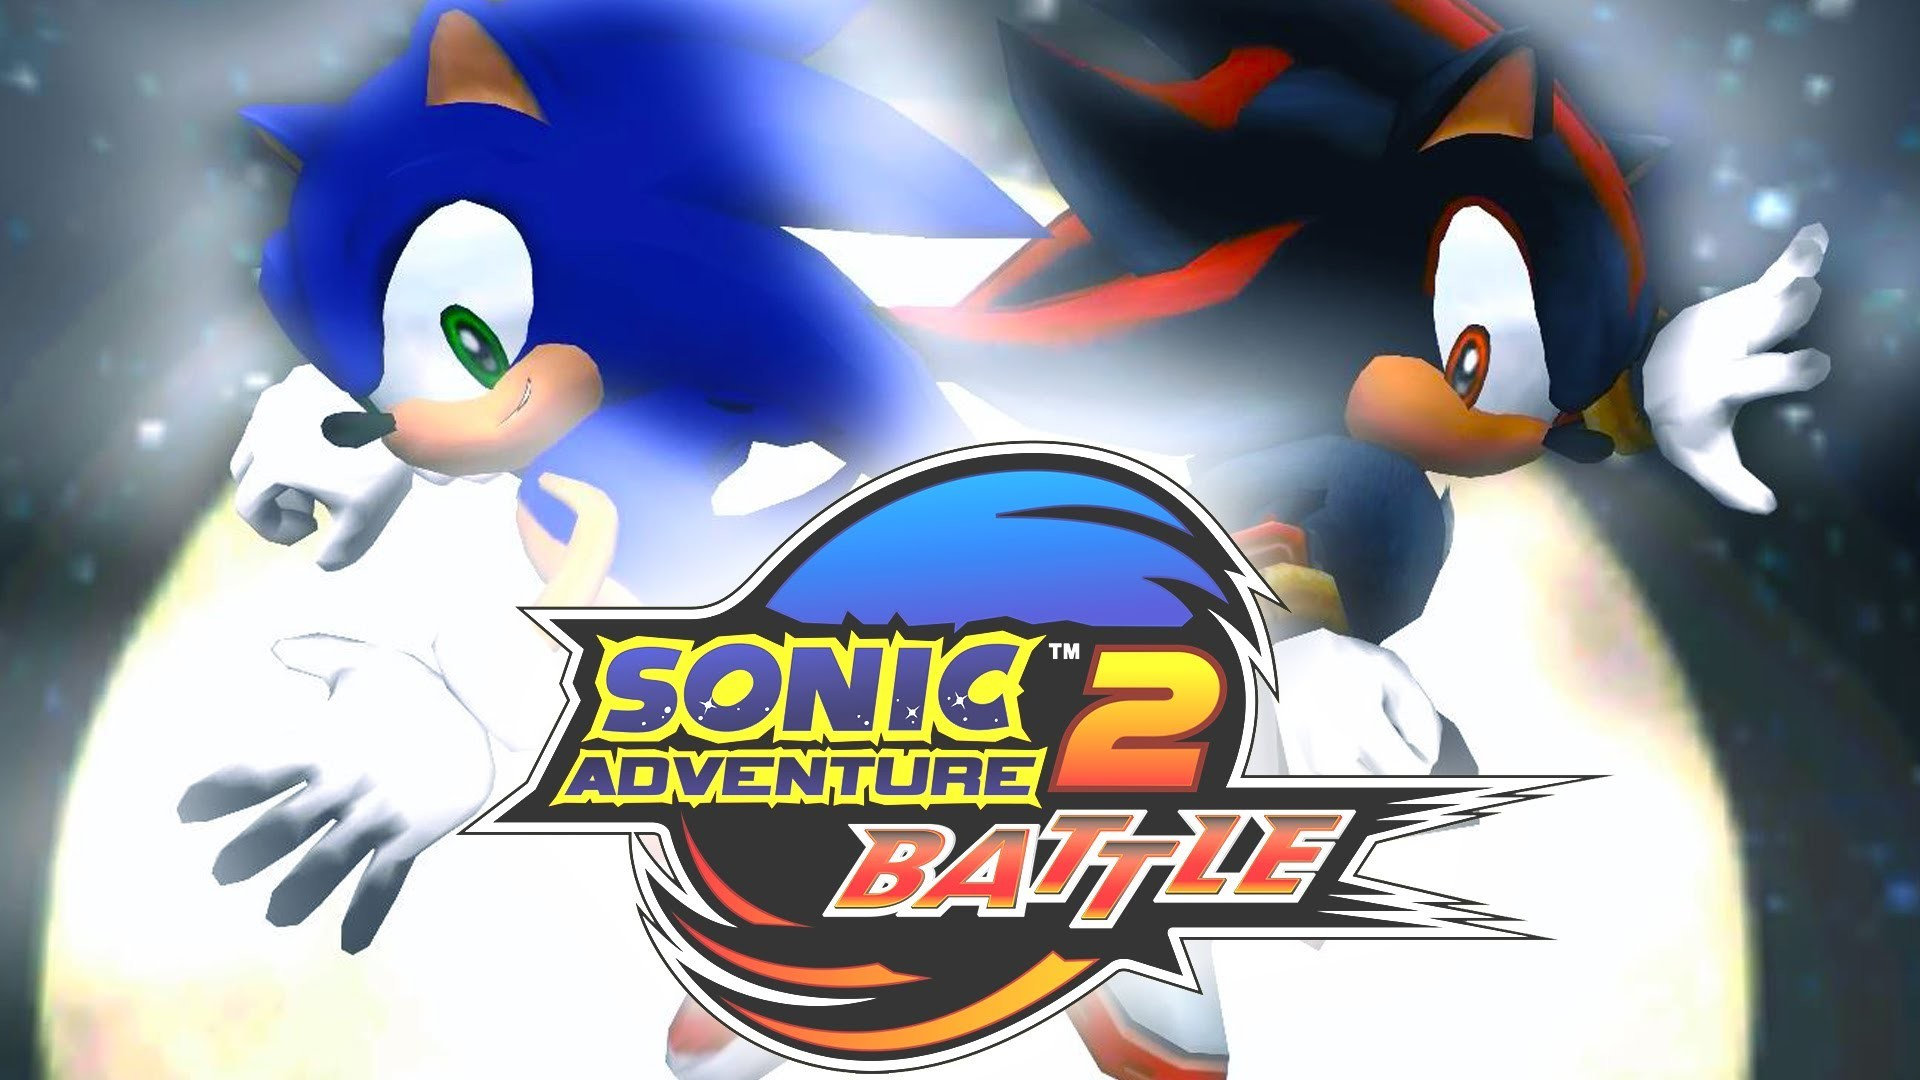 1920x1080 Sonic Adventure 2 Battle - Intro [Remastered Widescreen HD with VFX]